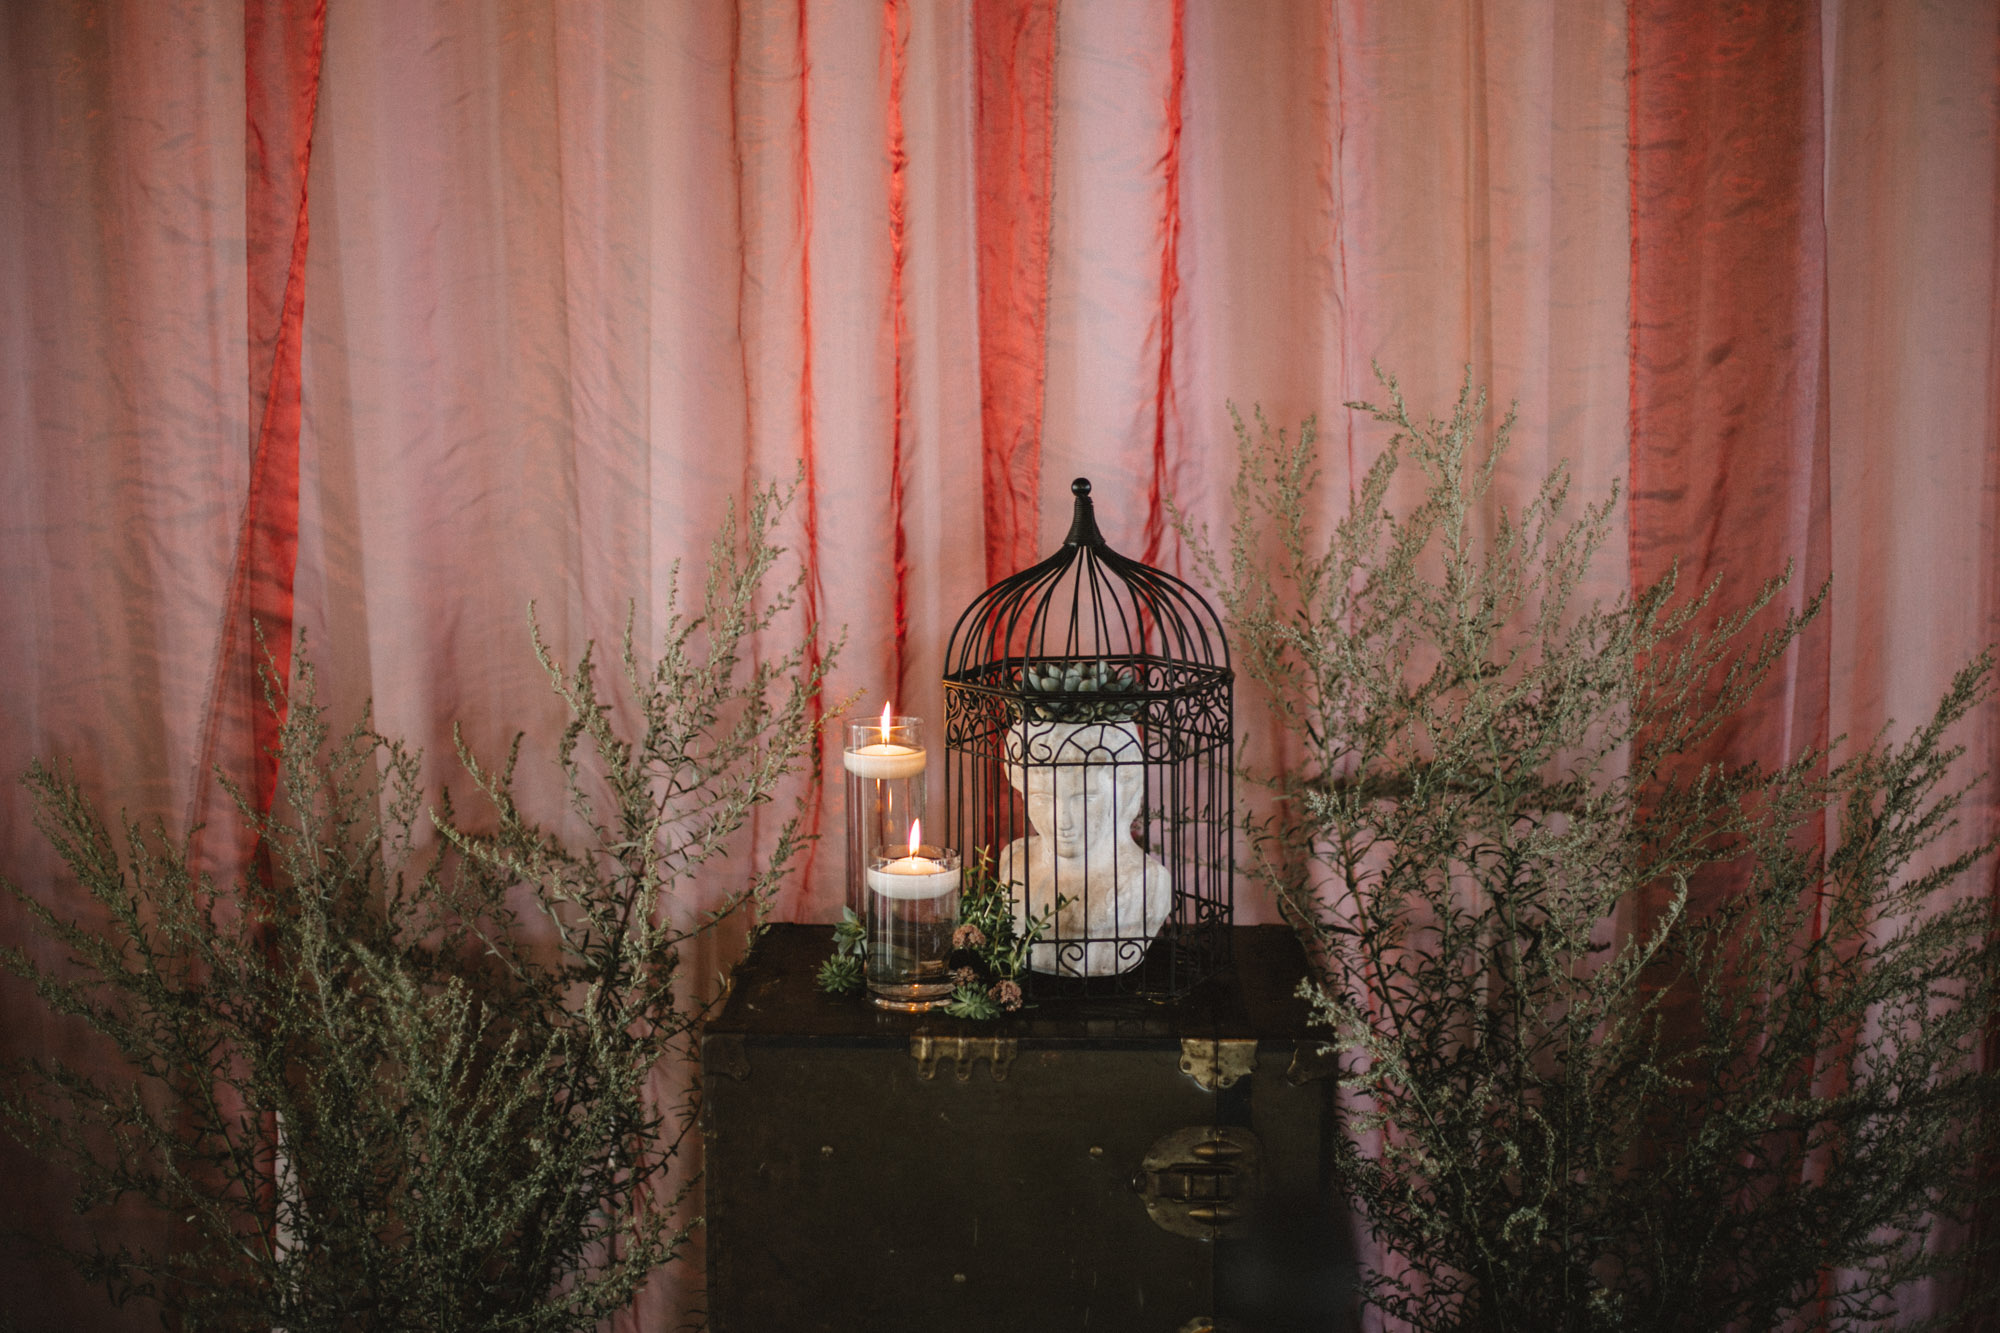 Eclectic wedding ceremony decor. Photography by Britt DeZeeuw, NP Event Space photographer.